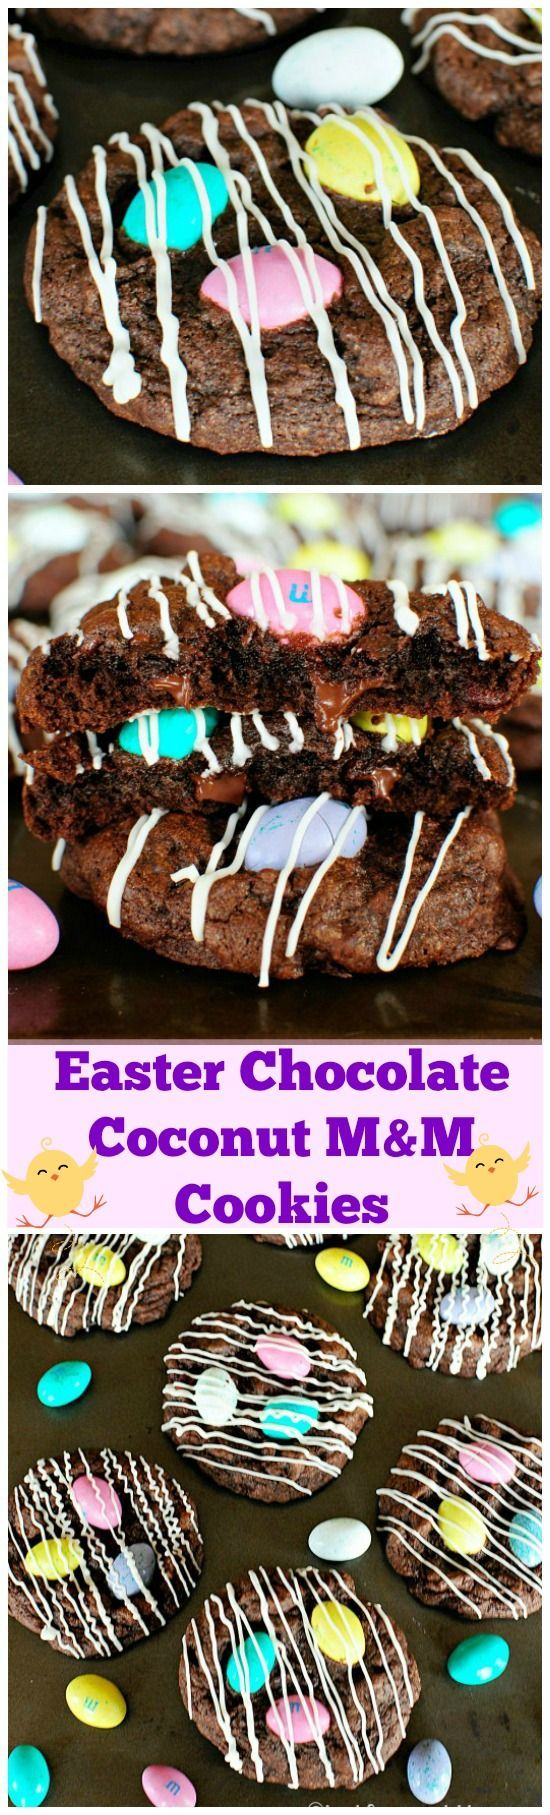 247 best creative food gifts images on pinterest caramel easter chocolate coconut mm cookies negle Gallery